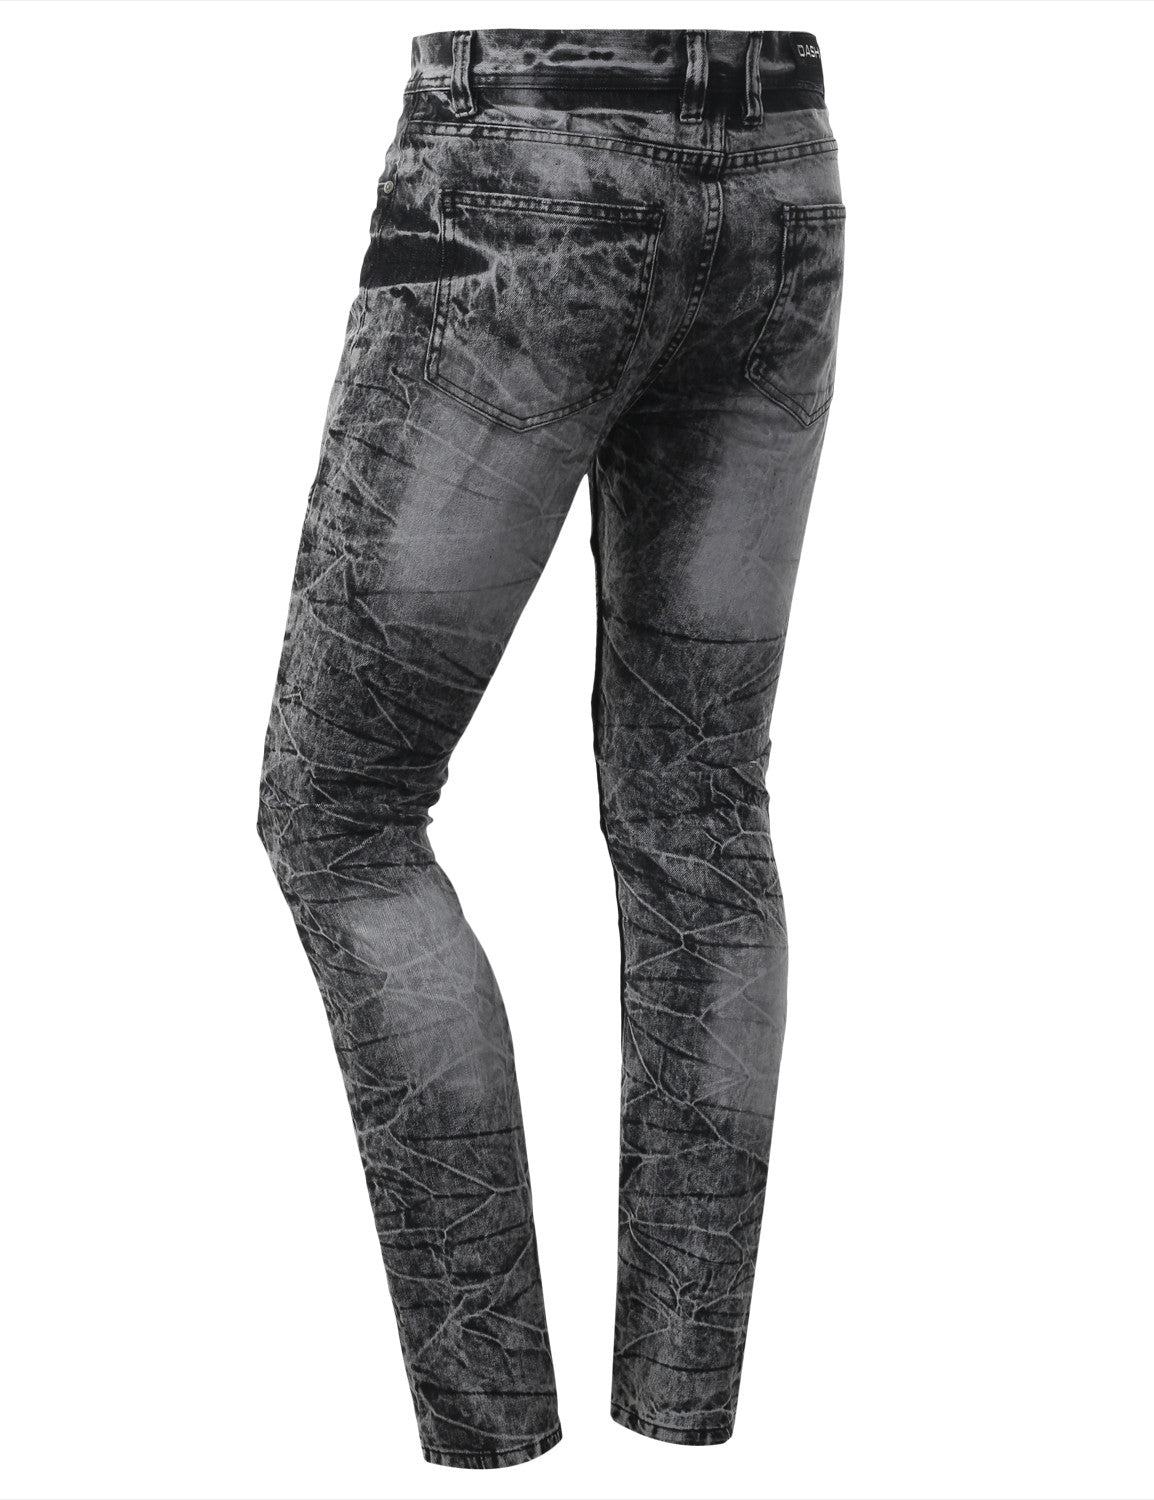 Straight Slim Fit Acid Wash Biker Jeans - URBANCREWS - 3